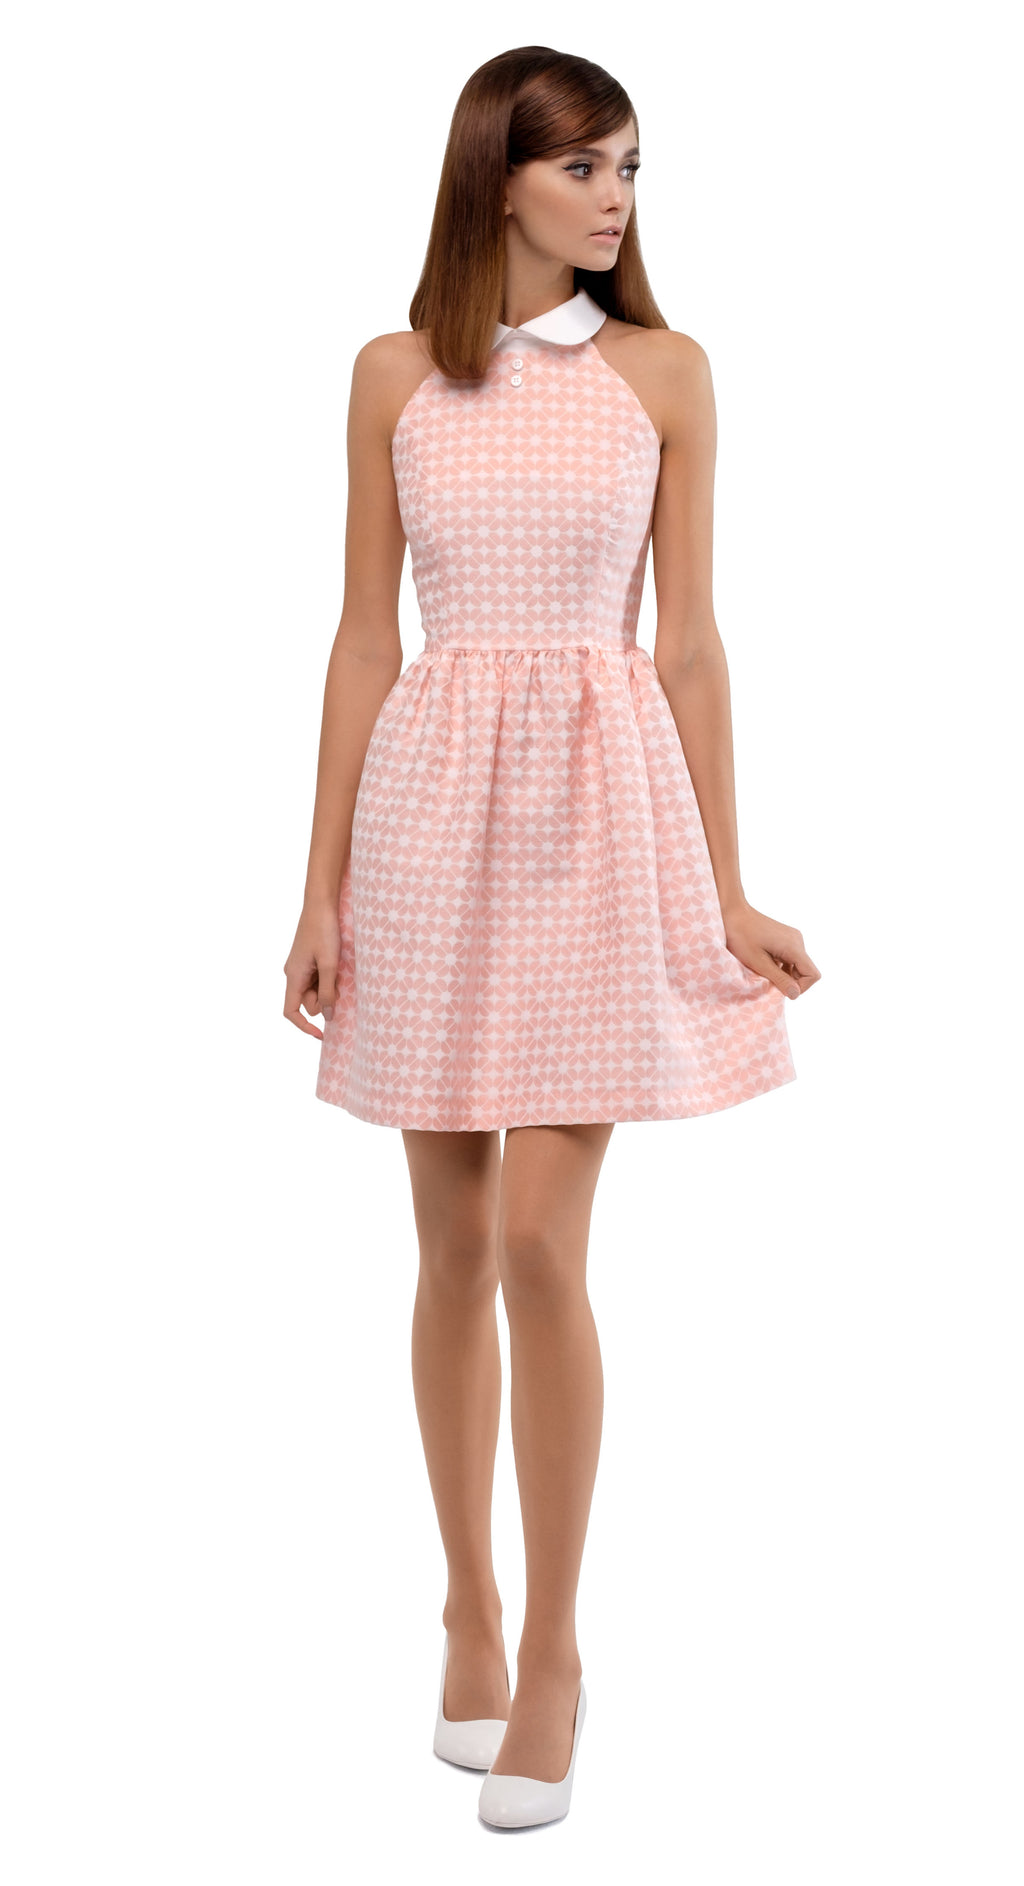 PINK GEOMETRIC PATTERN DRESS WITH WHITE COLLAR